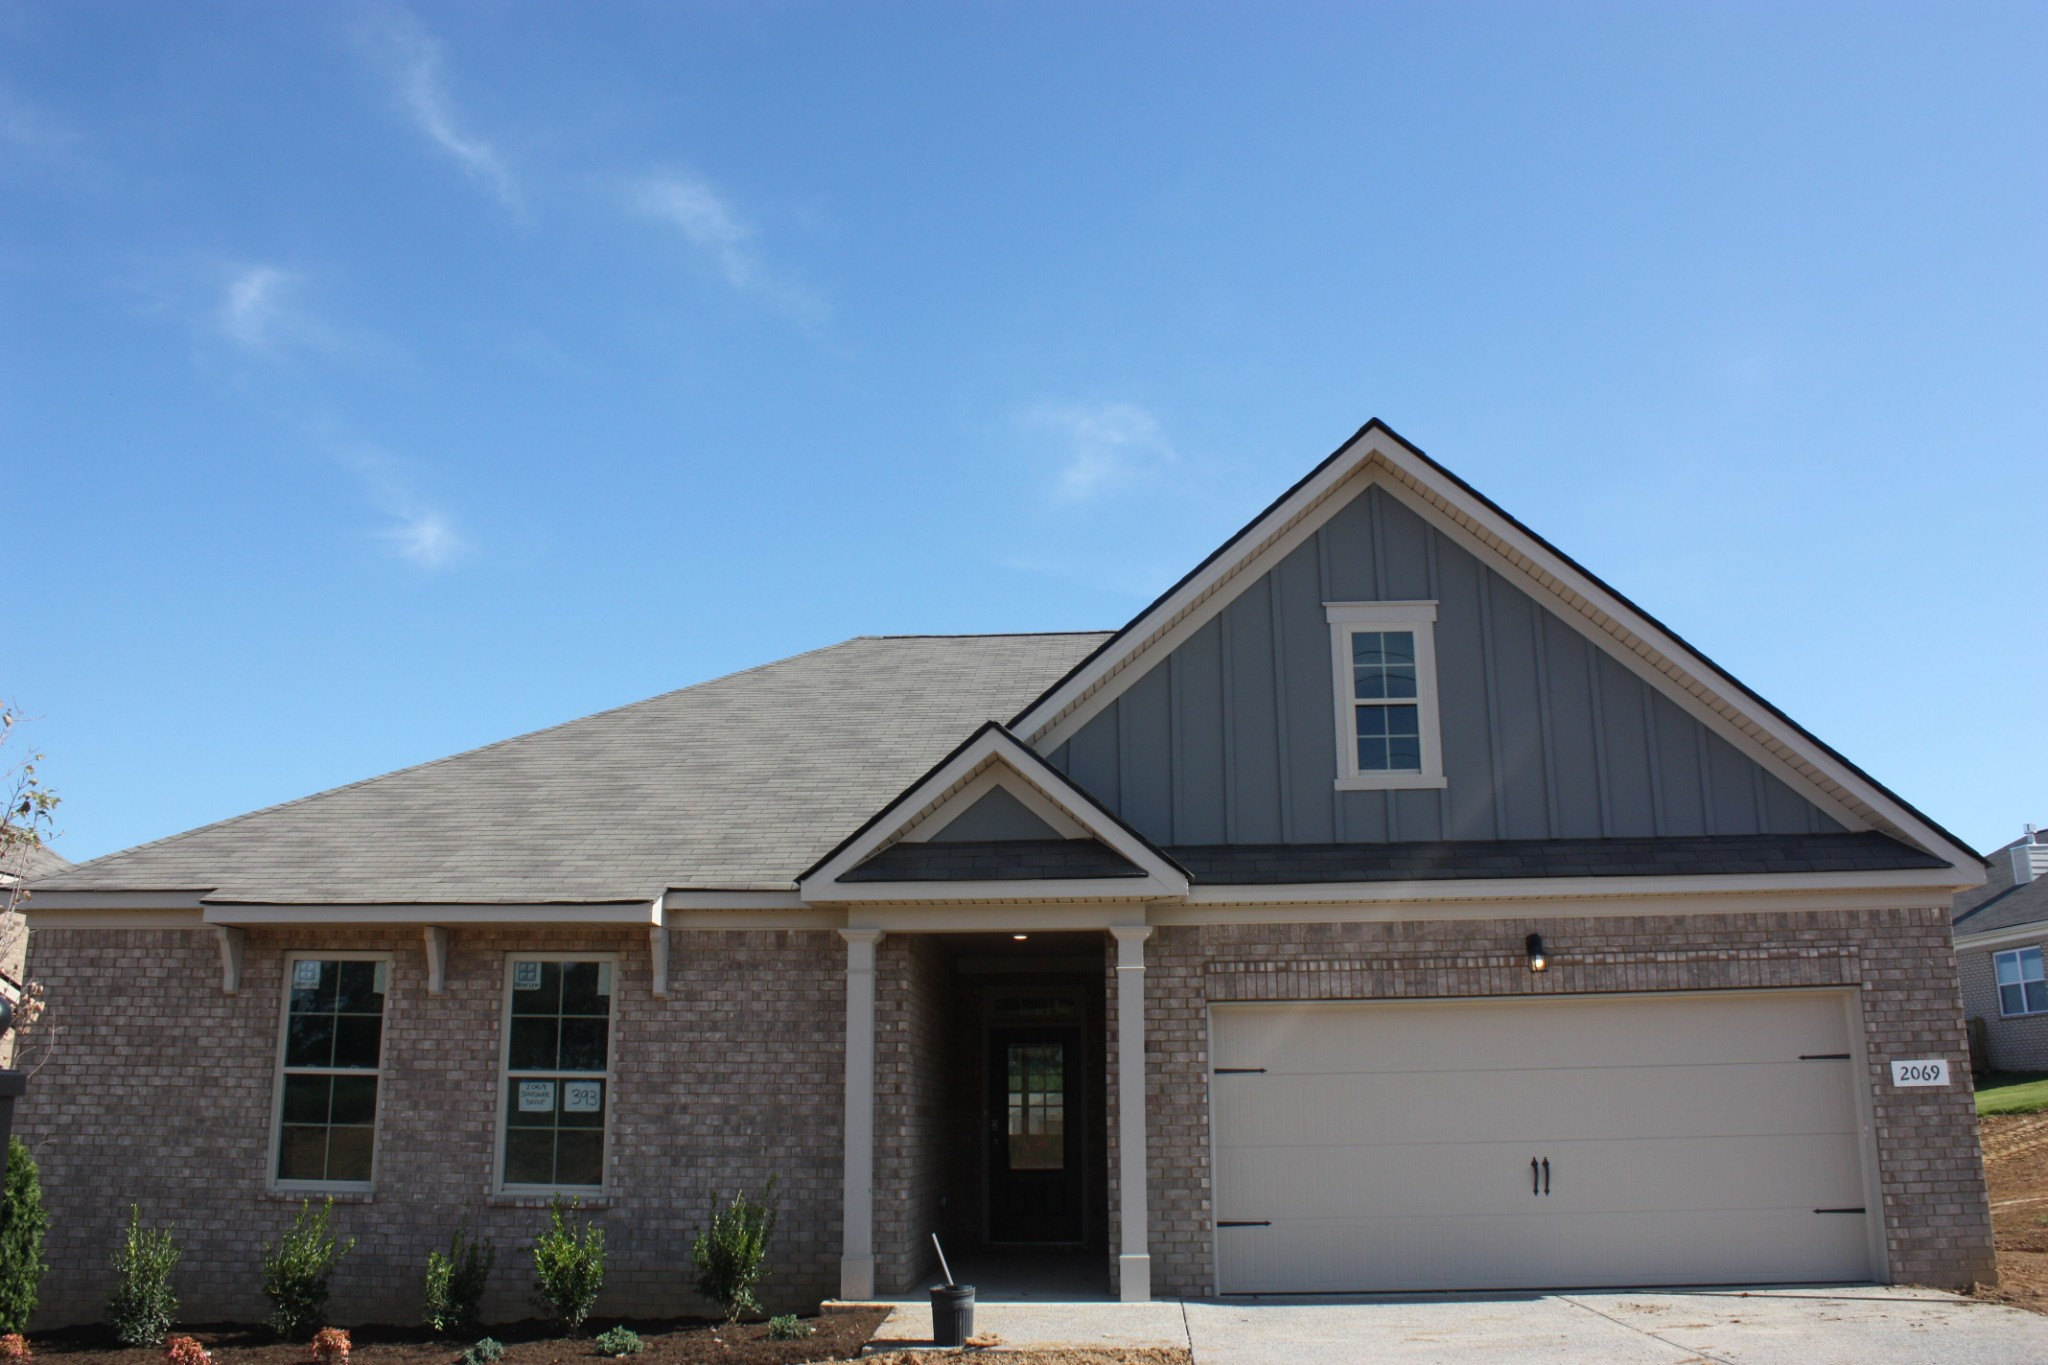 2074 Sunflower Drive, Lot 364, Spring Hill, Tennessee